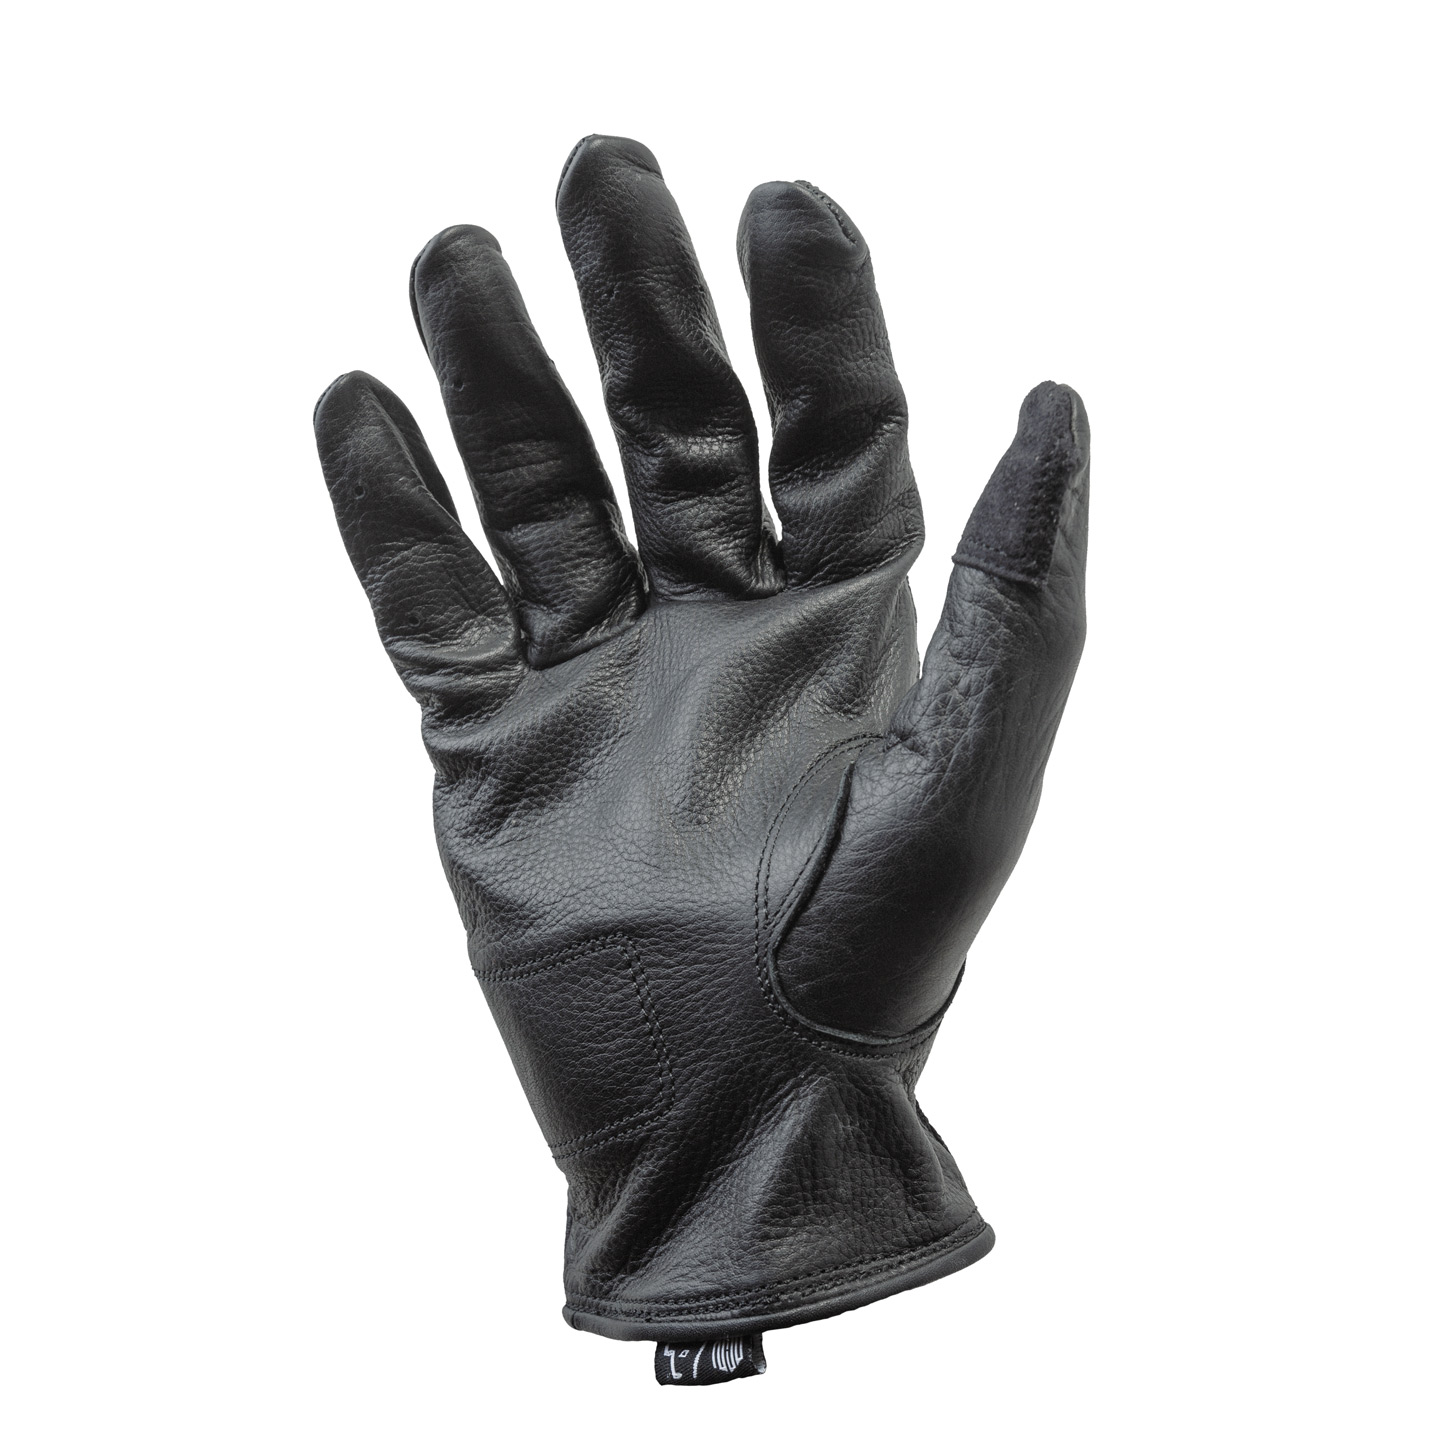 Del Mar Gloves Black Full